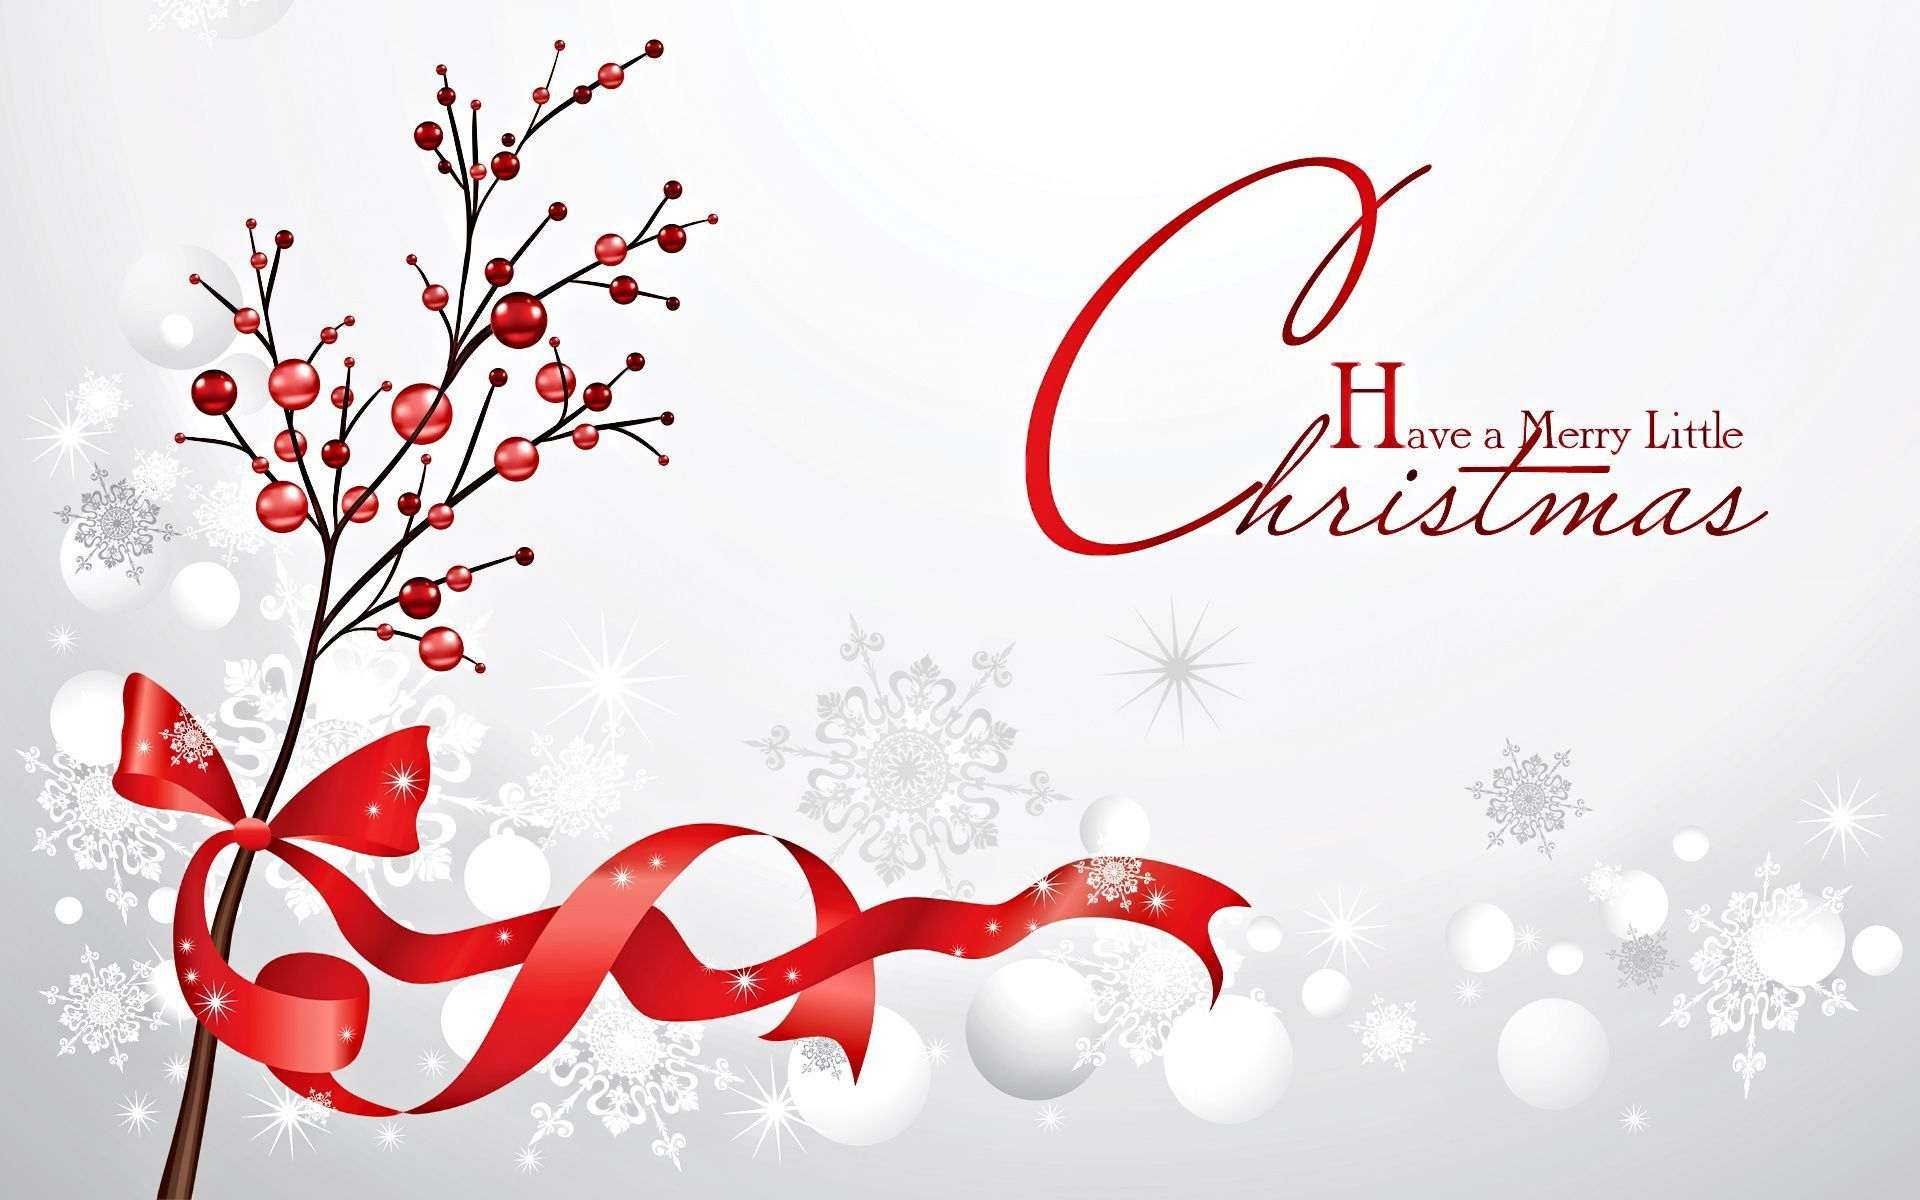 20 best merry christmas images on pinterest   merry christmas